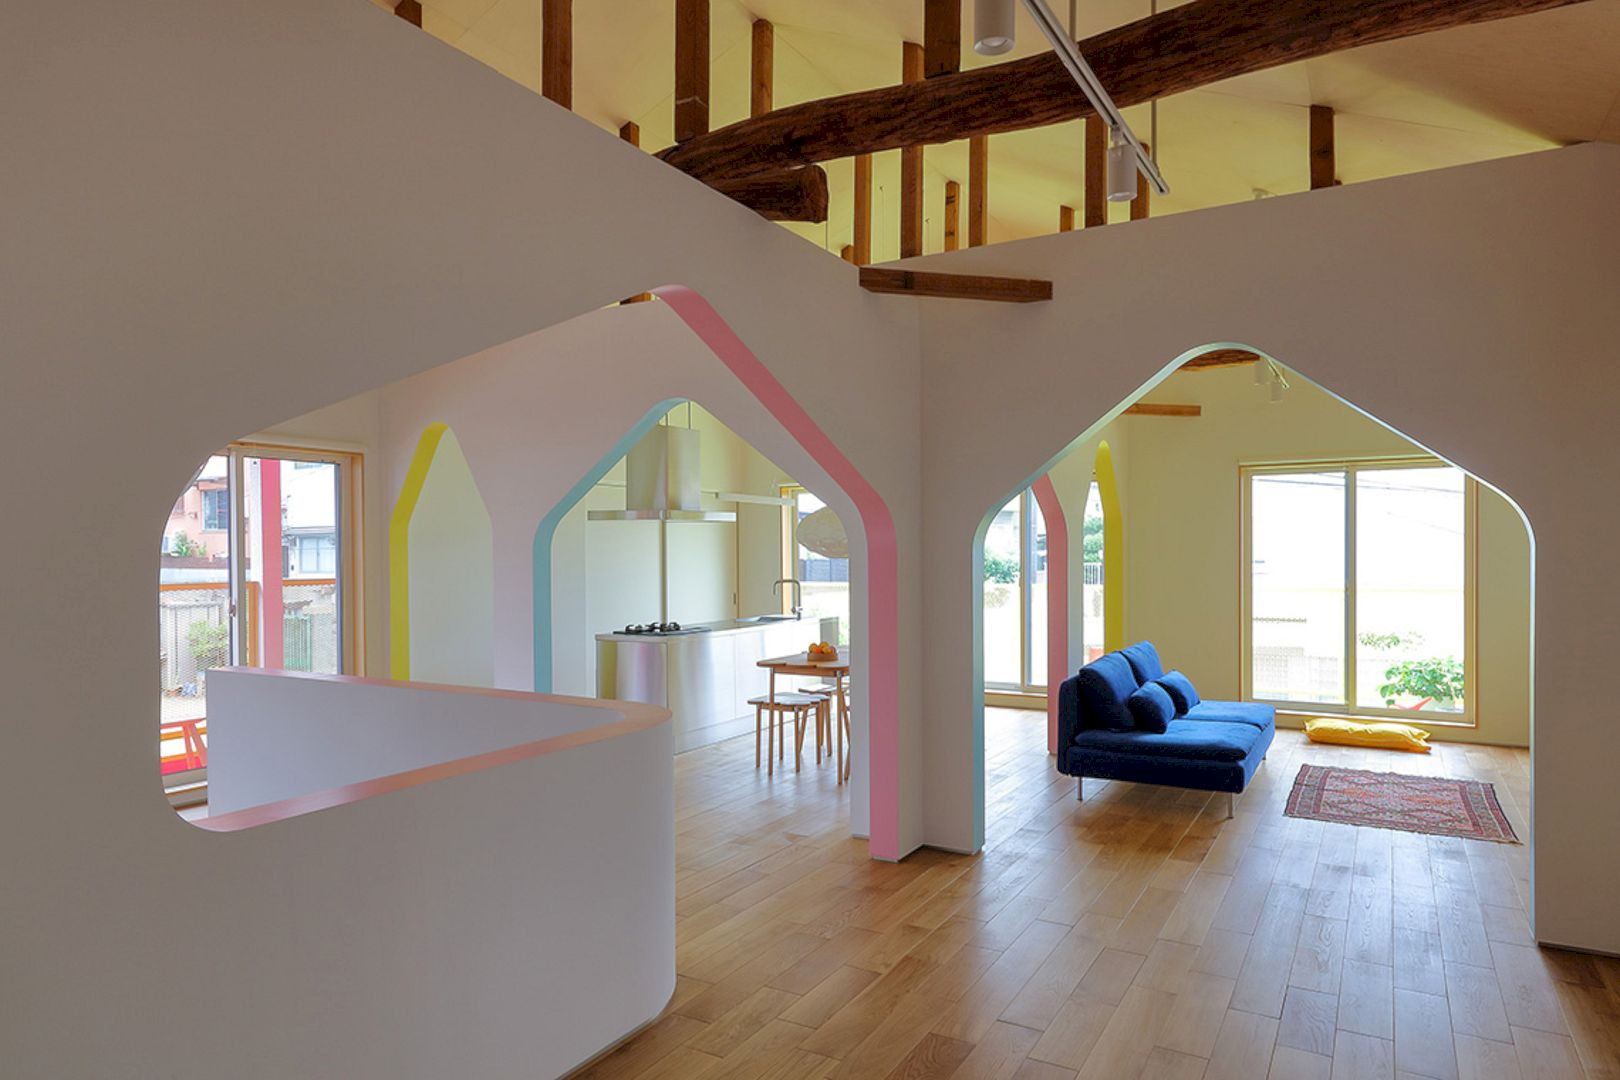 House Of Many Arches By 24d Studio 9